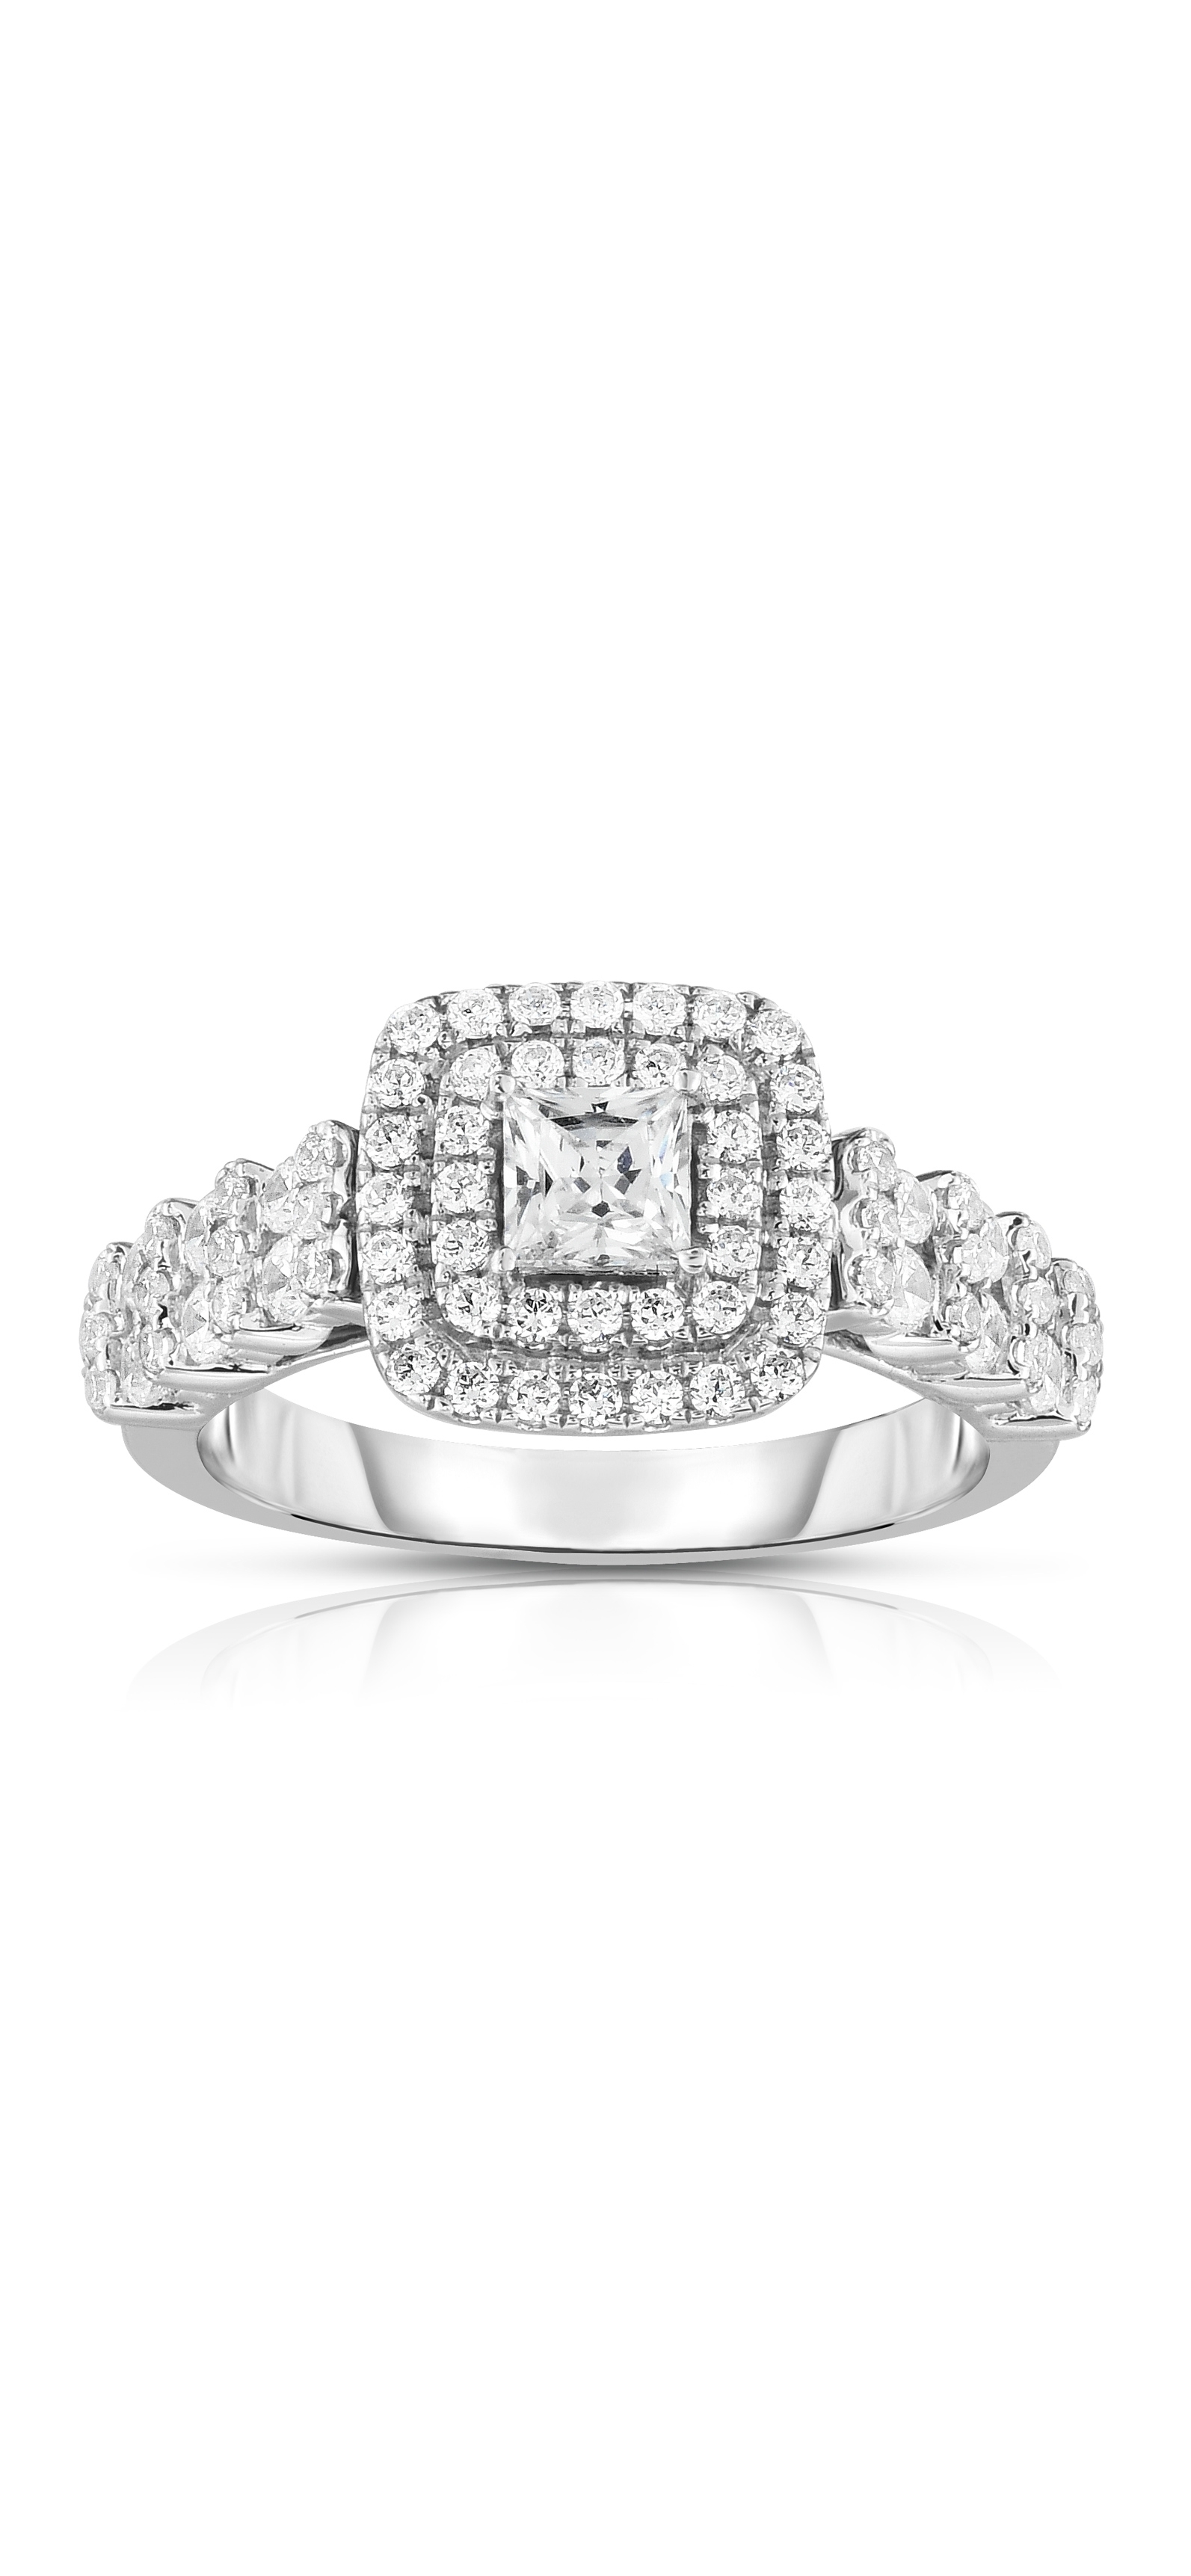 Diamond Engagement Ring Collection In Partnership With Zales Outlet In Most Recently Released Diamond Double Frame Vintage Style Rings (Gallery 8 of 15)